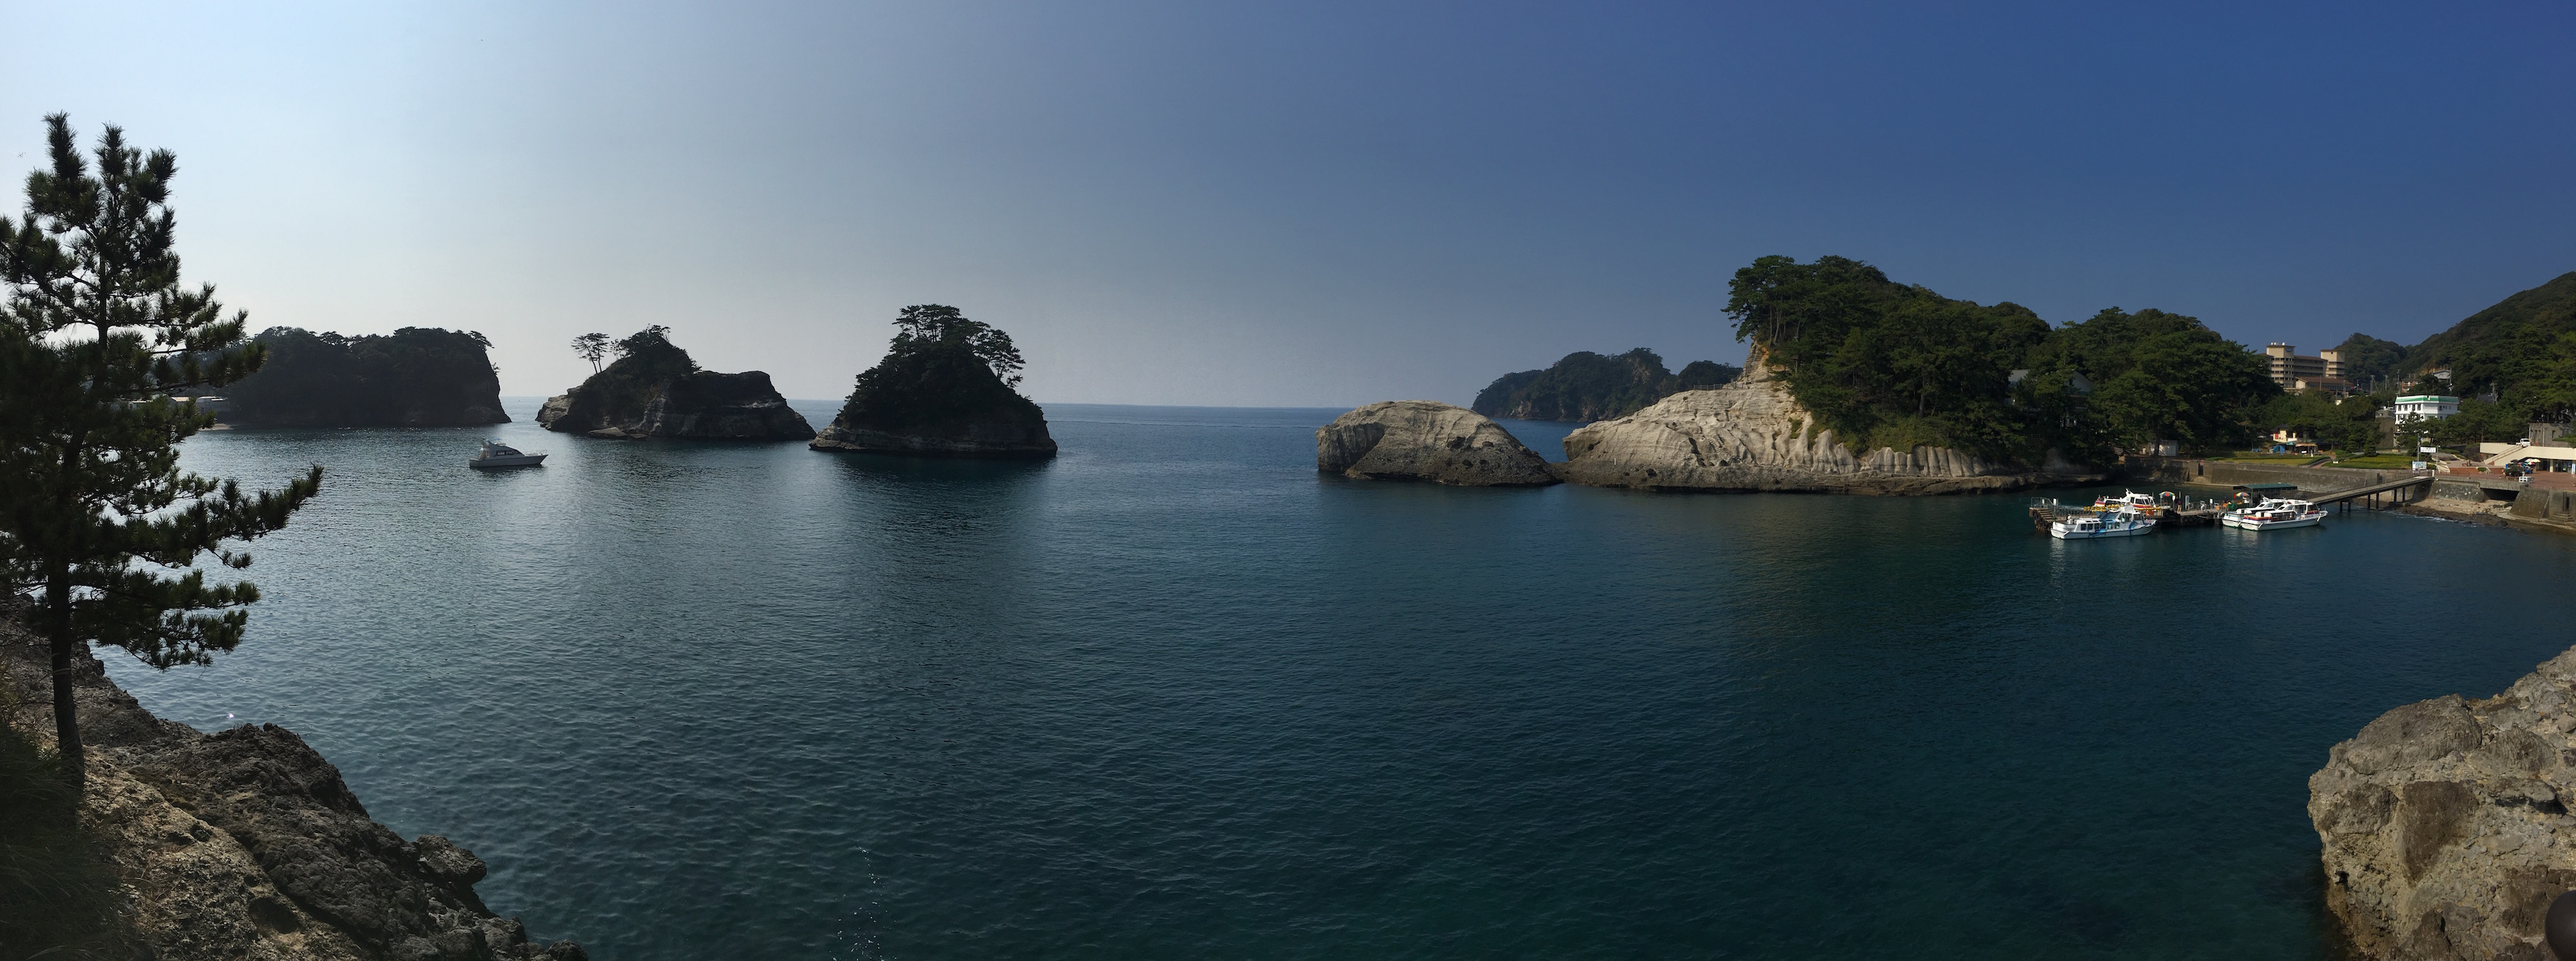 Panorama of a lovely bay